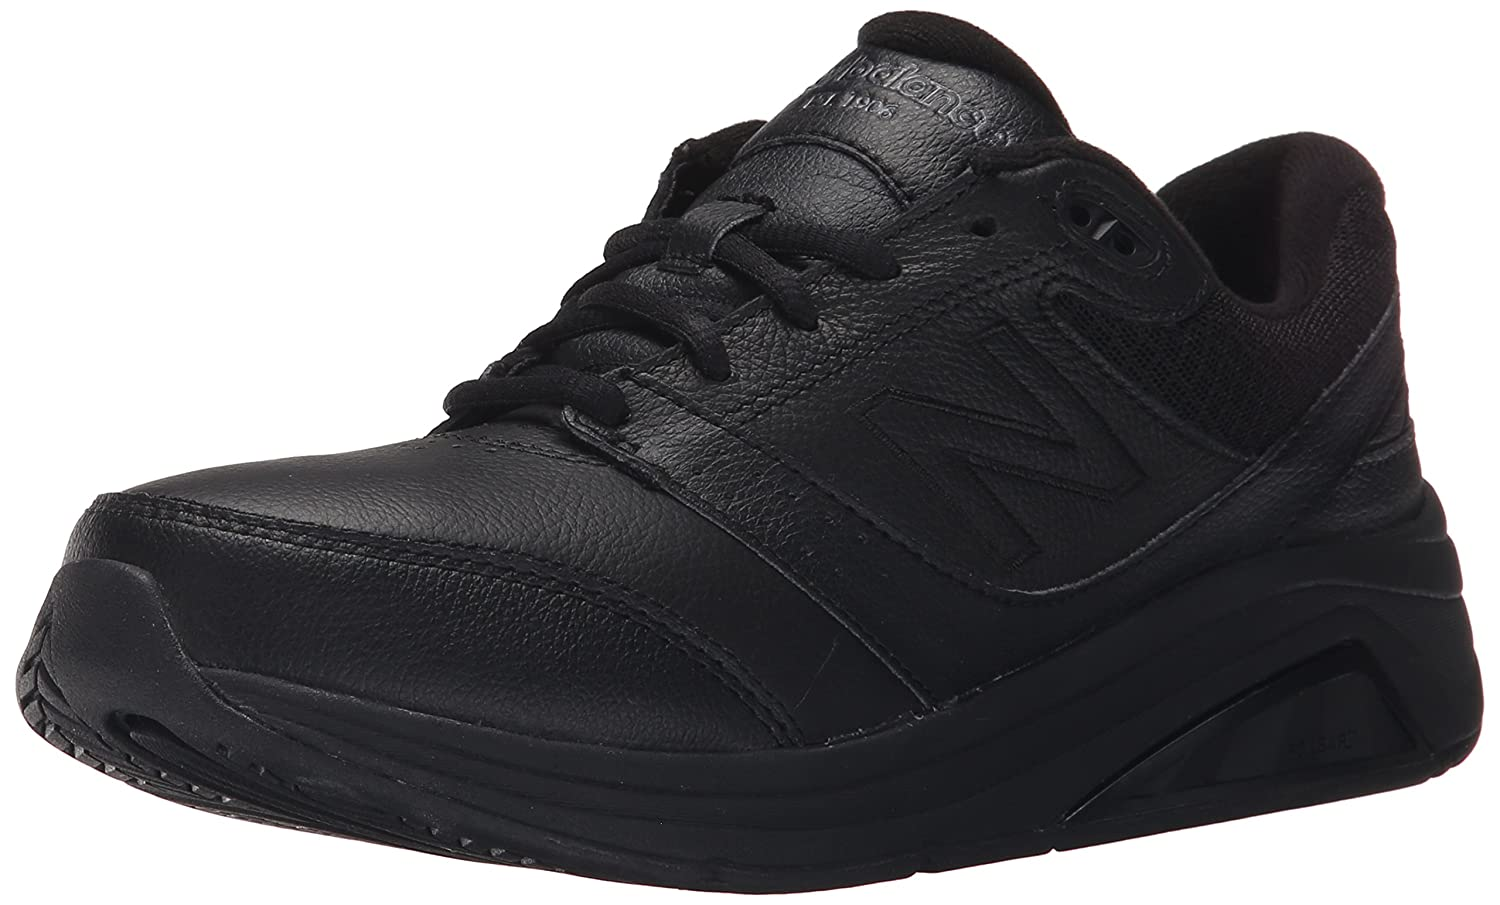 New Balance Women's 928v2 Walking Shoe B00Z7K2ABK 5.5 D US|Black